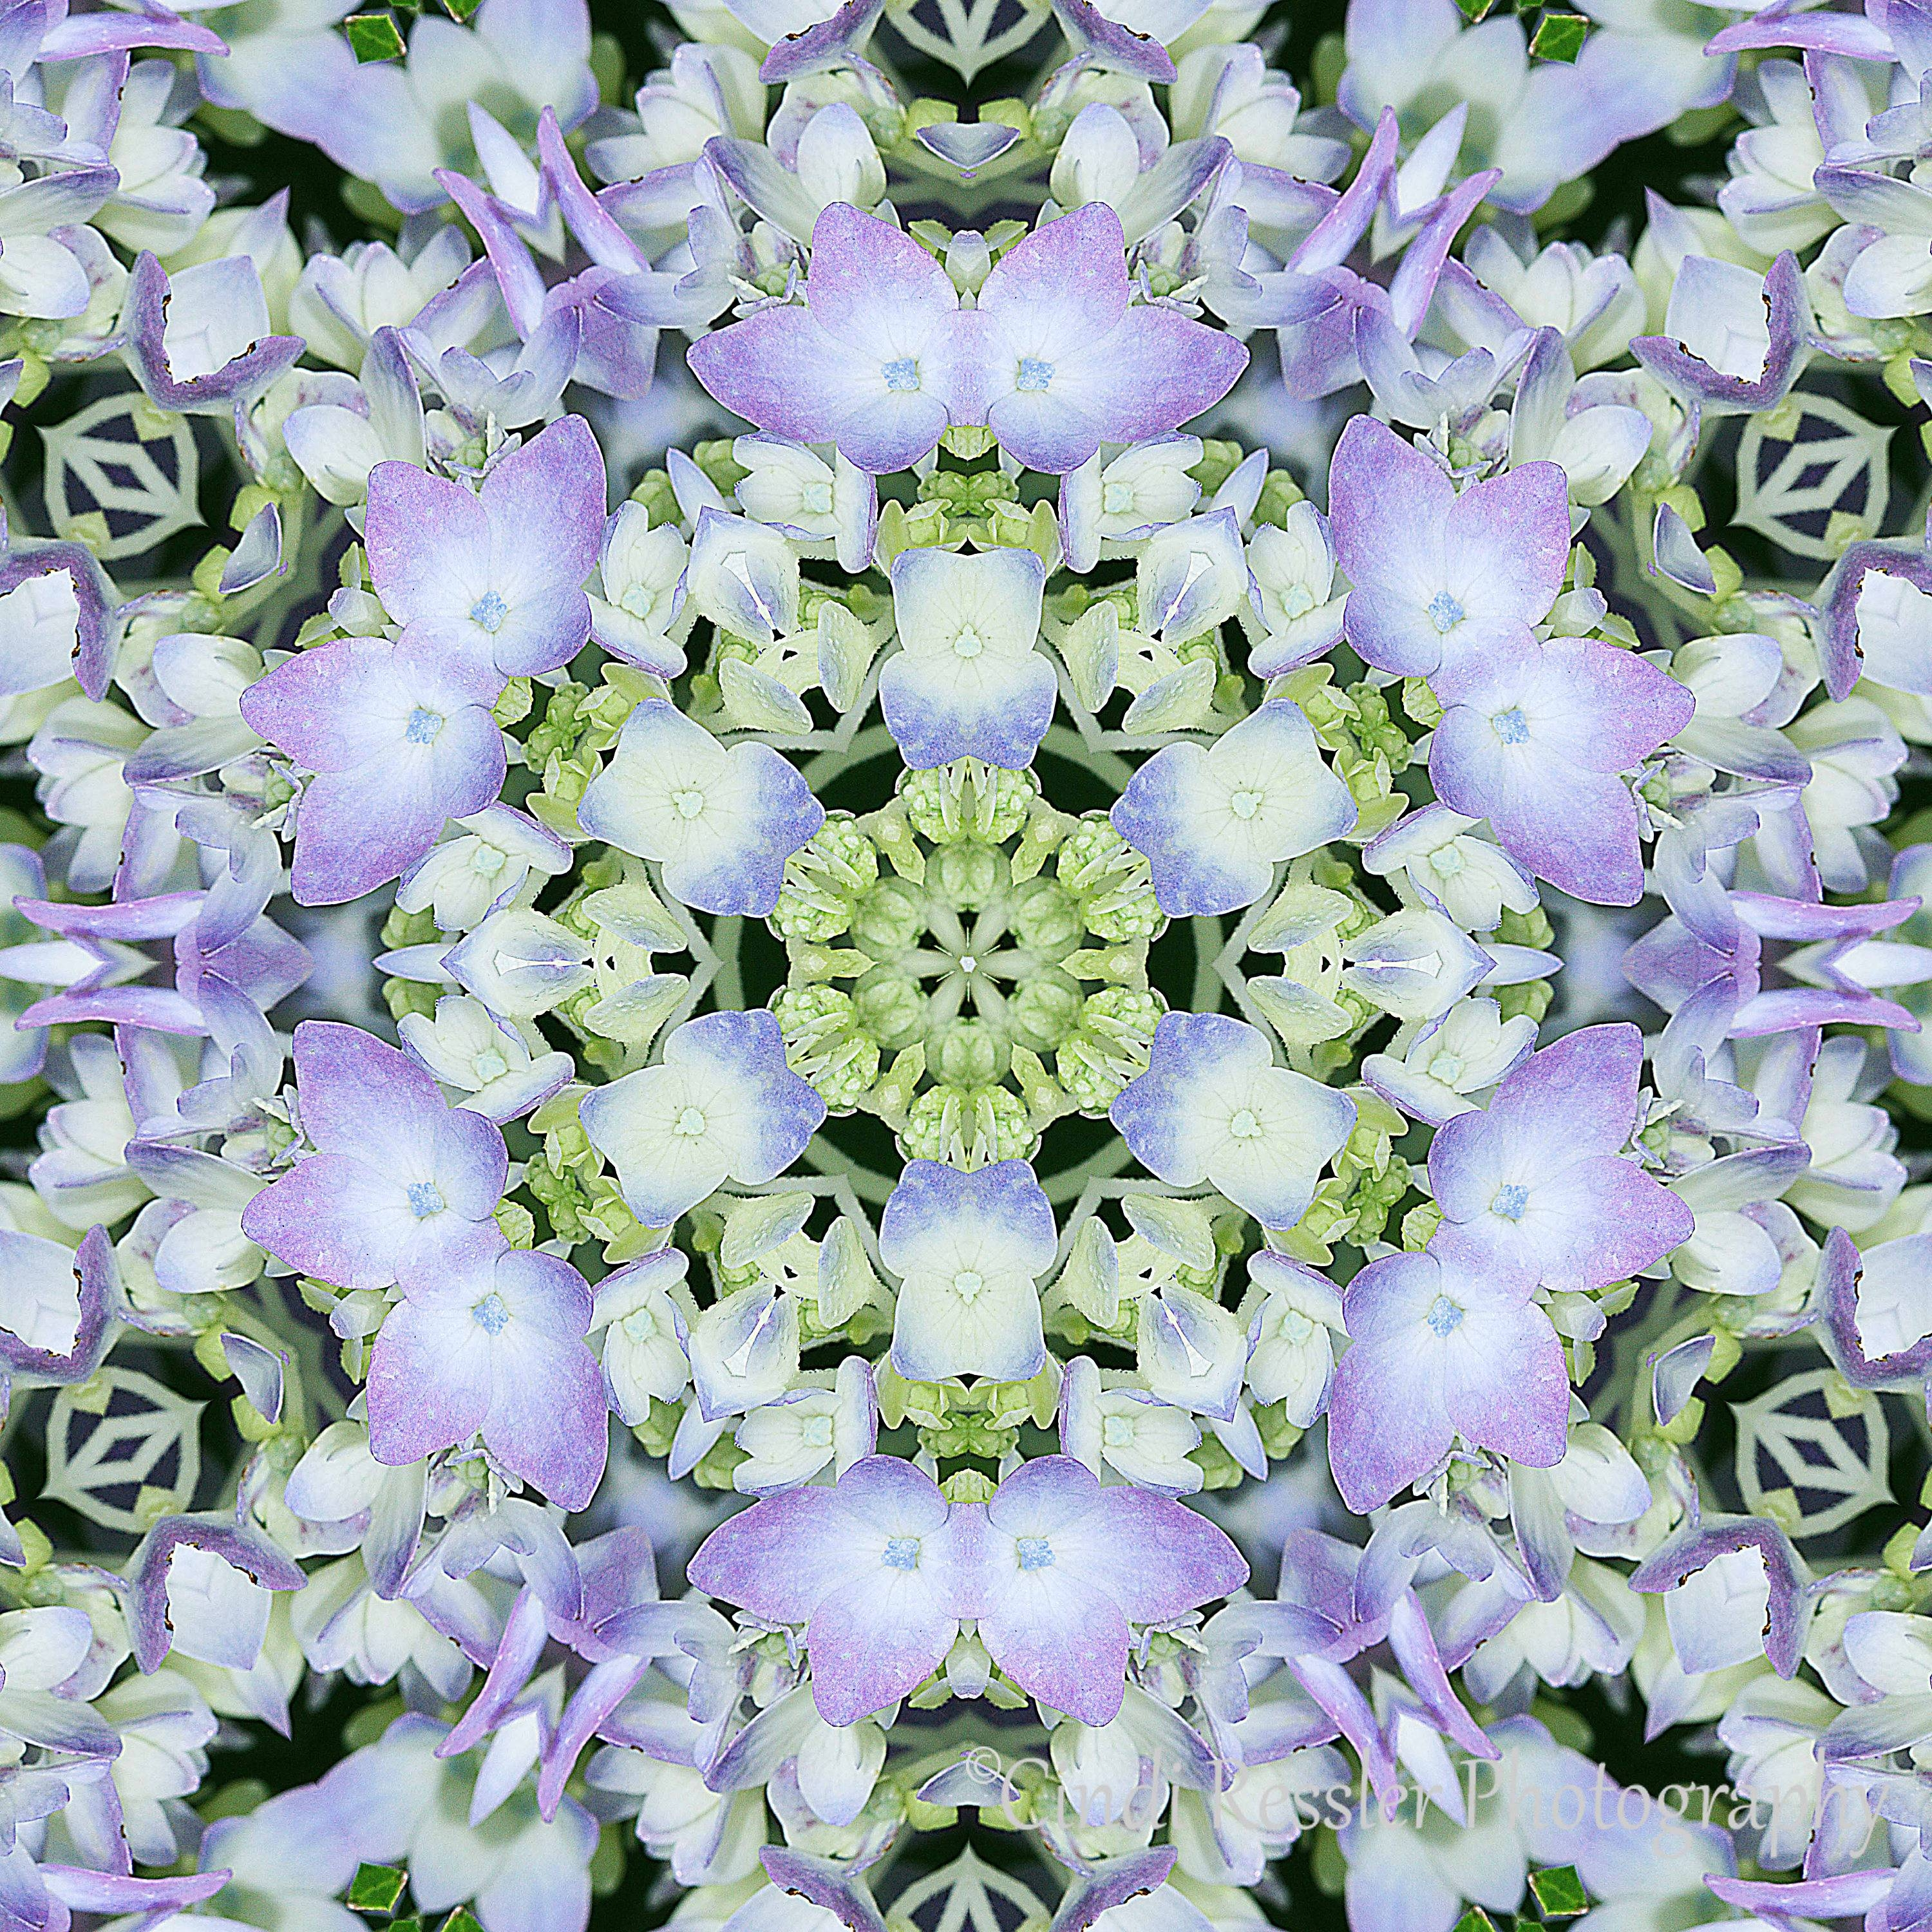 Hydrangea Kaleidoscope, Photo Art, Digital Art, Photography Inside Most Up To Date Kaleidoscope Wall Art (View 10 of 20)